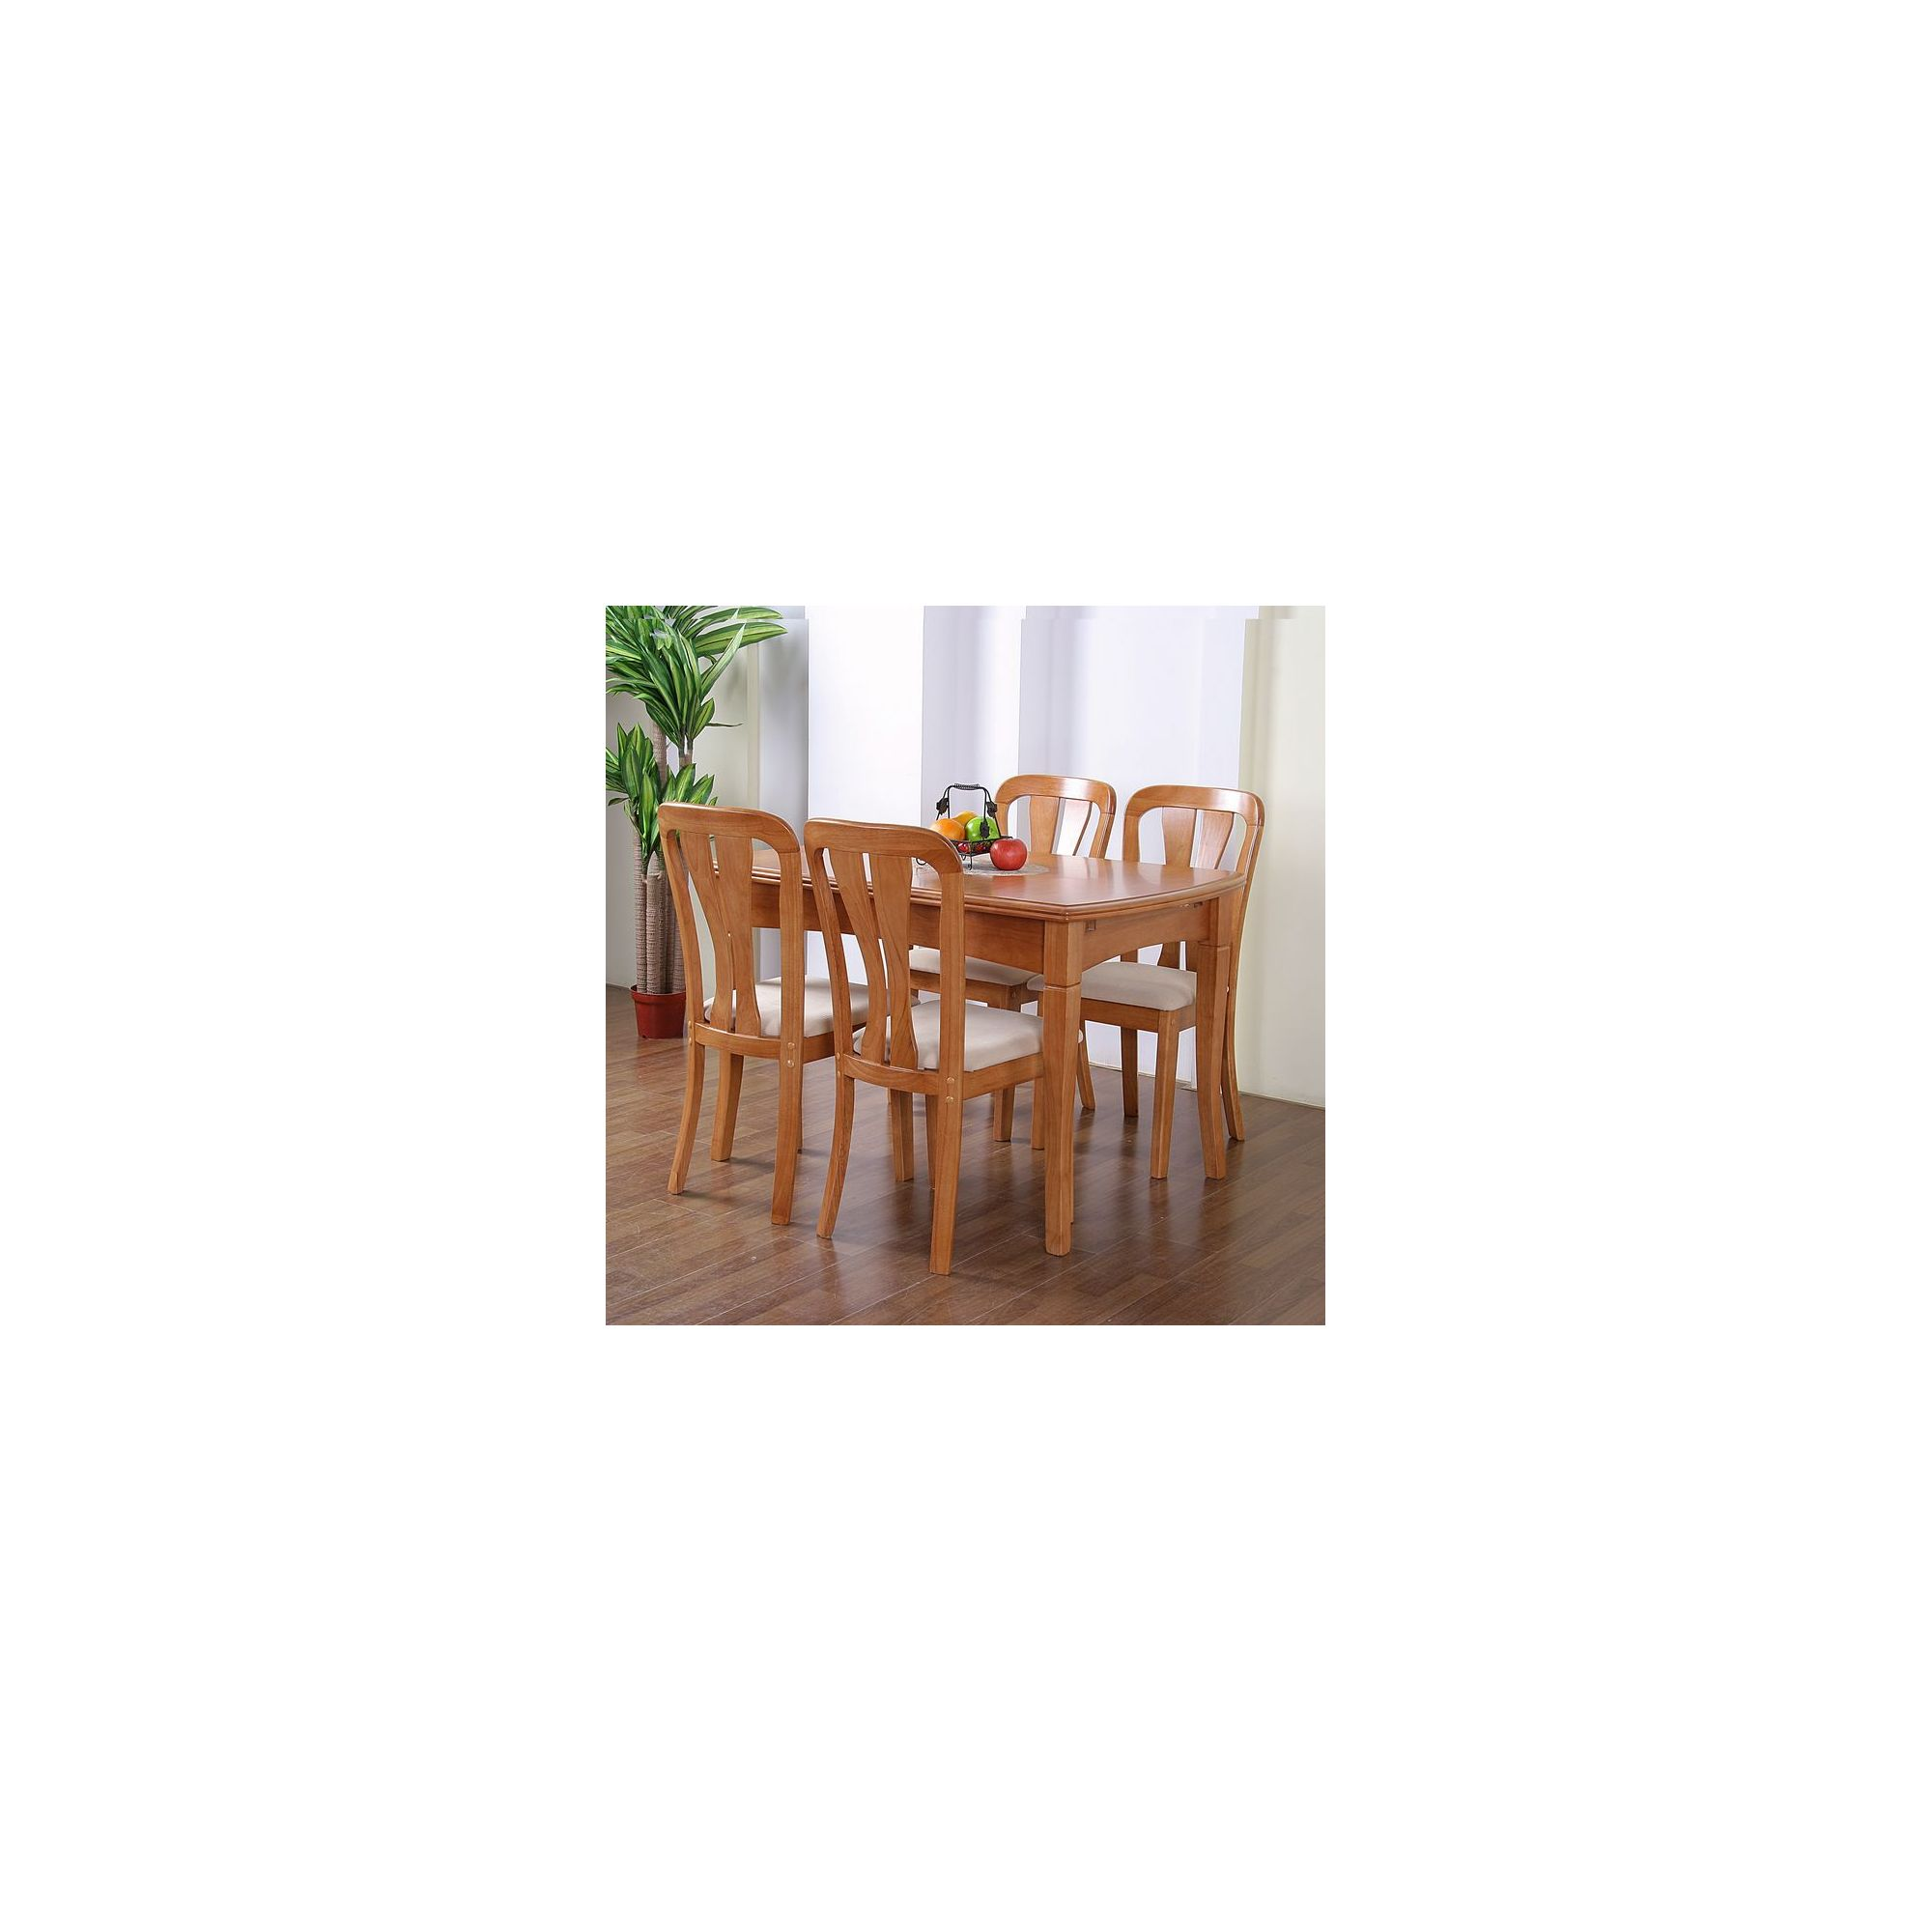 G&P Furniture Windsor House 5-Piece Grantham Extending Dining Set with Slatted Back Chair - Maple at Tesco Direct